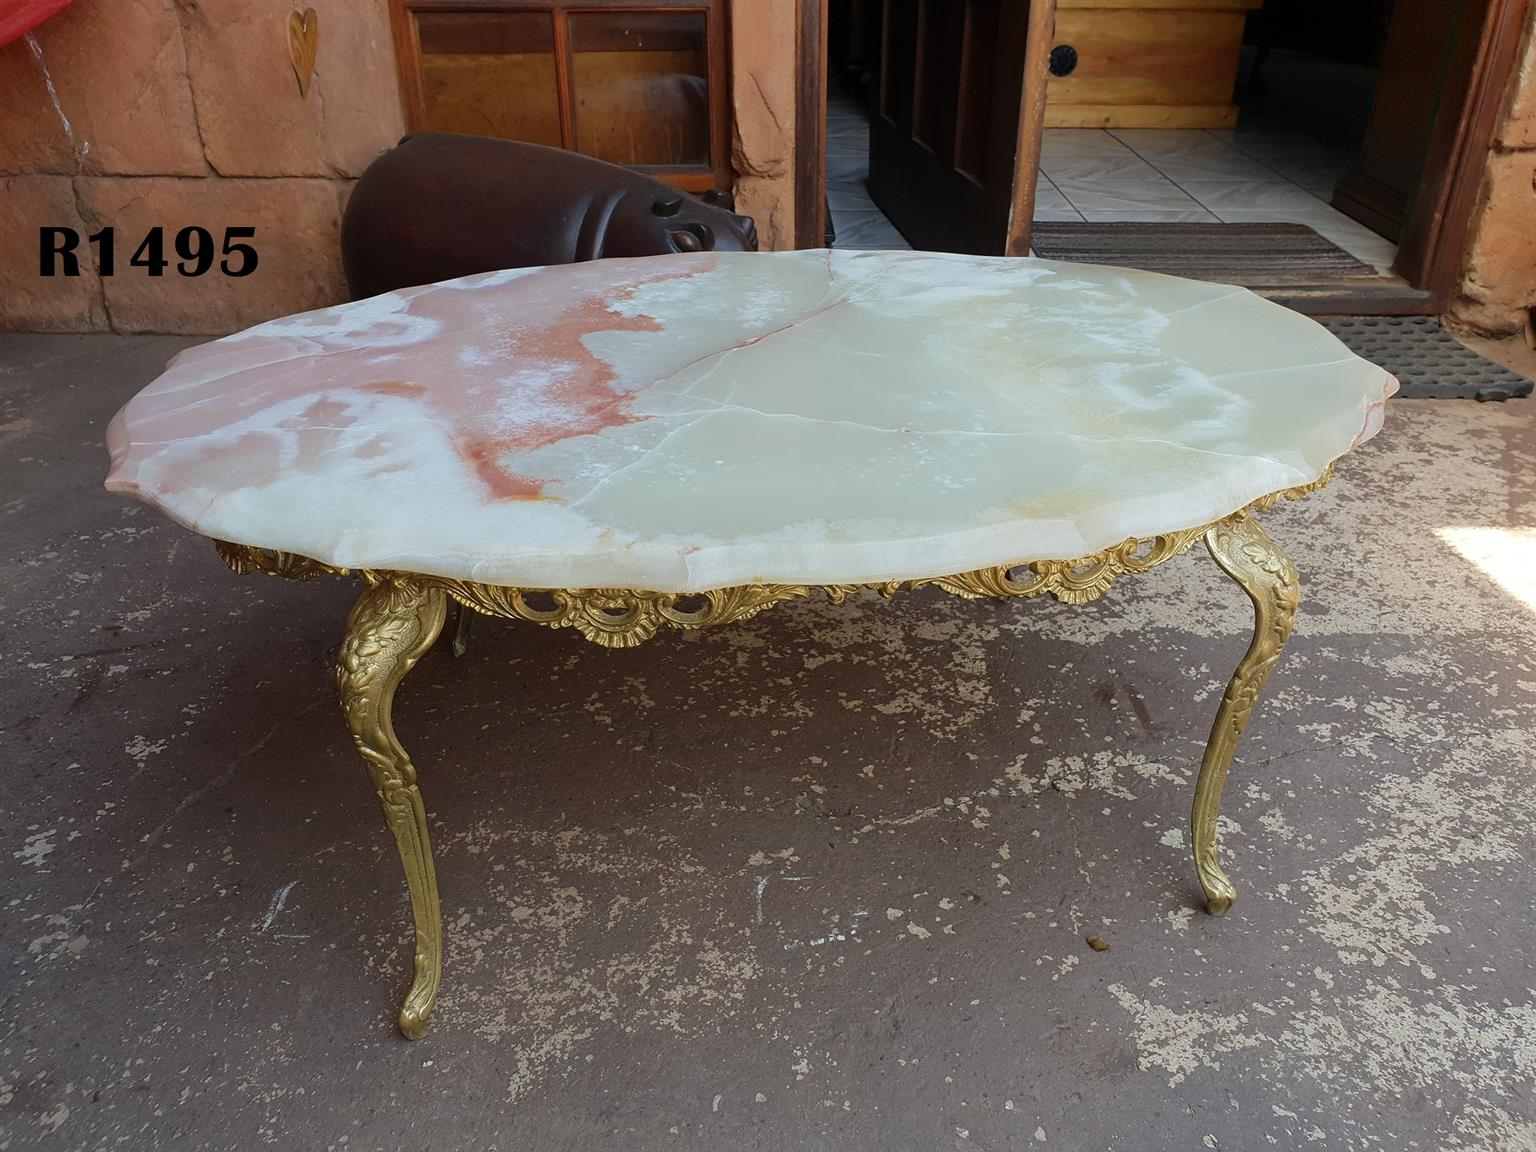 Marble Coffee Table with Brass Legs (1000x680x430)